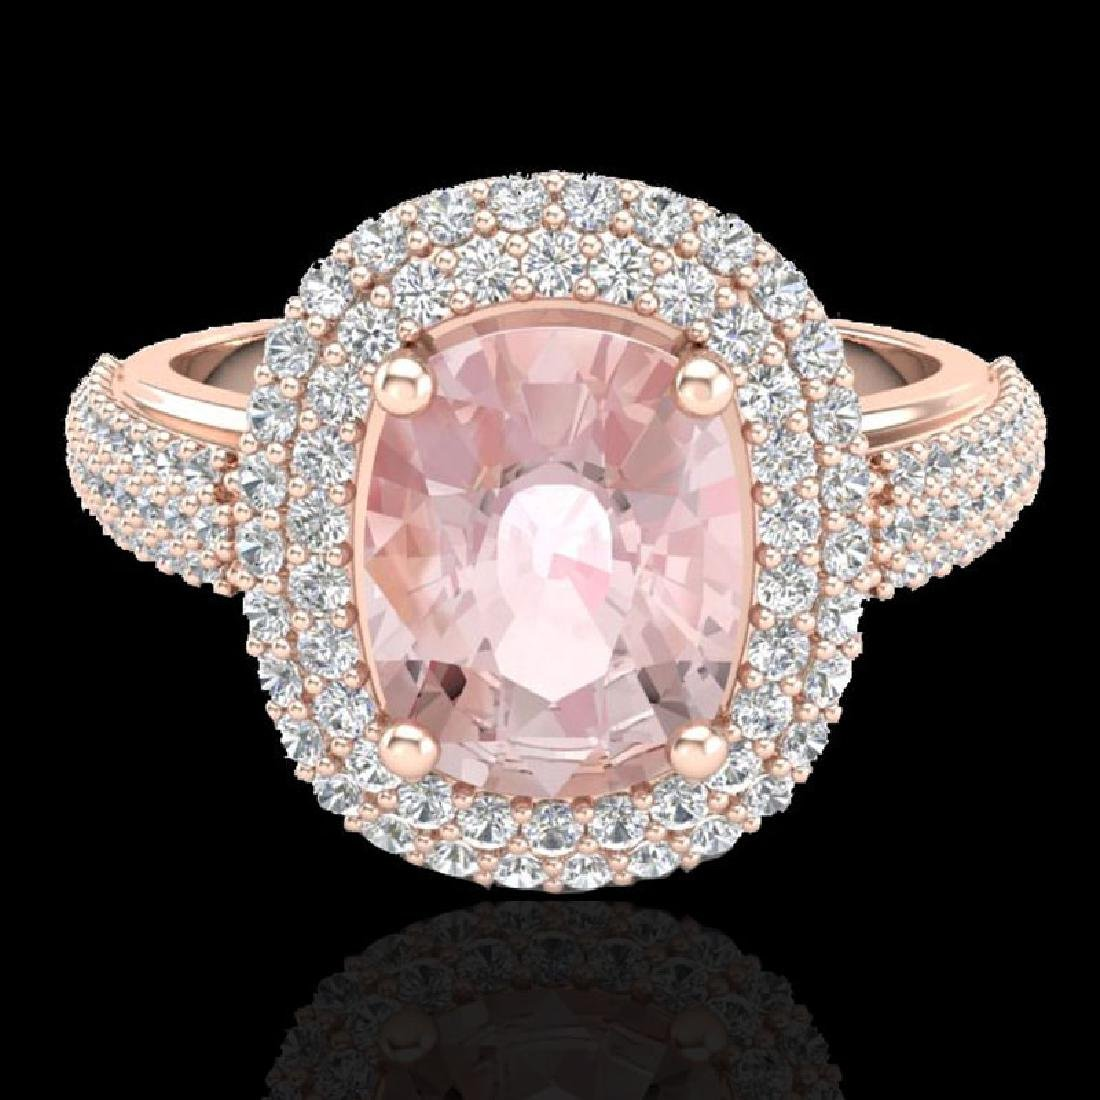 3.25 CTW Morganite & Micro Pave VS/SI Diamond Halo Ring